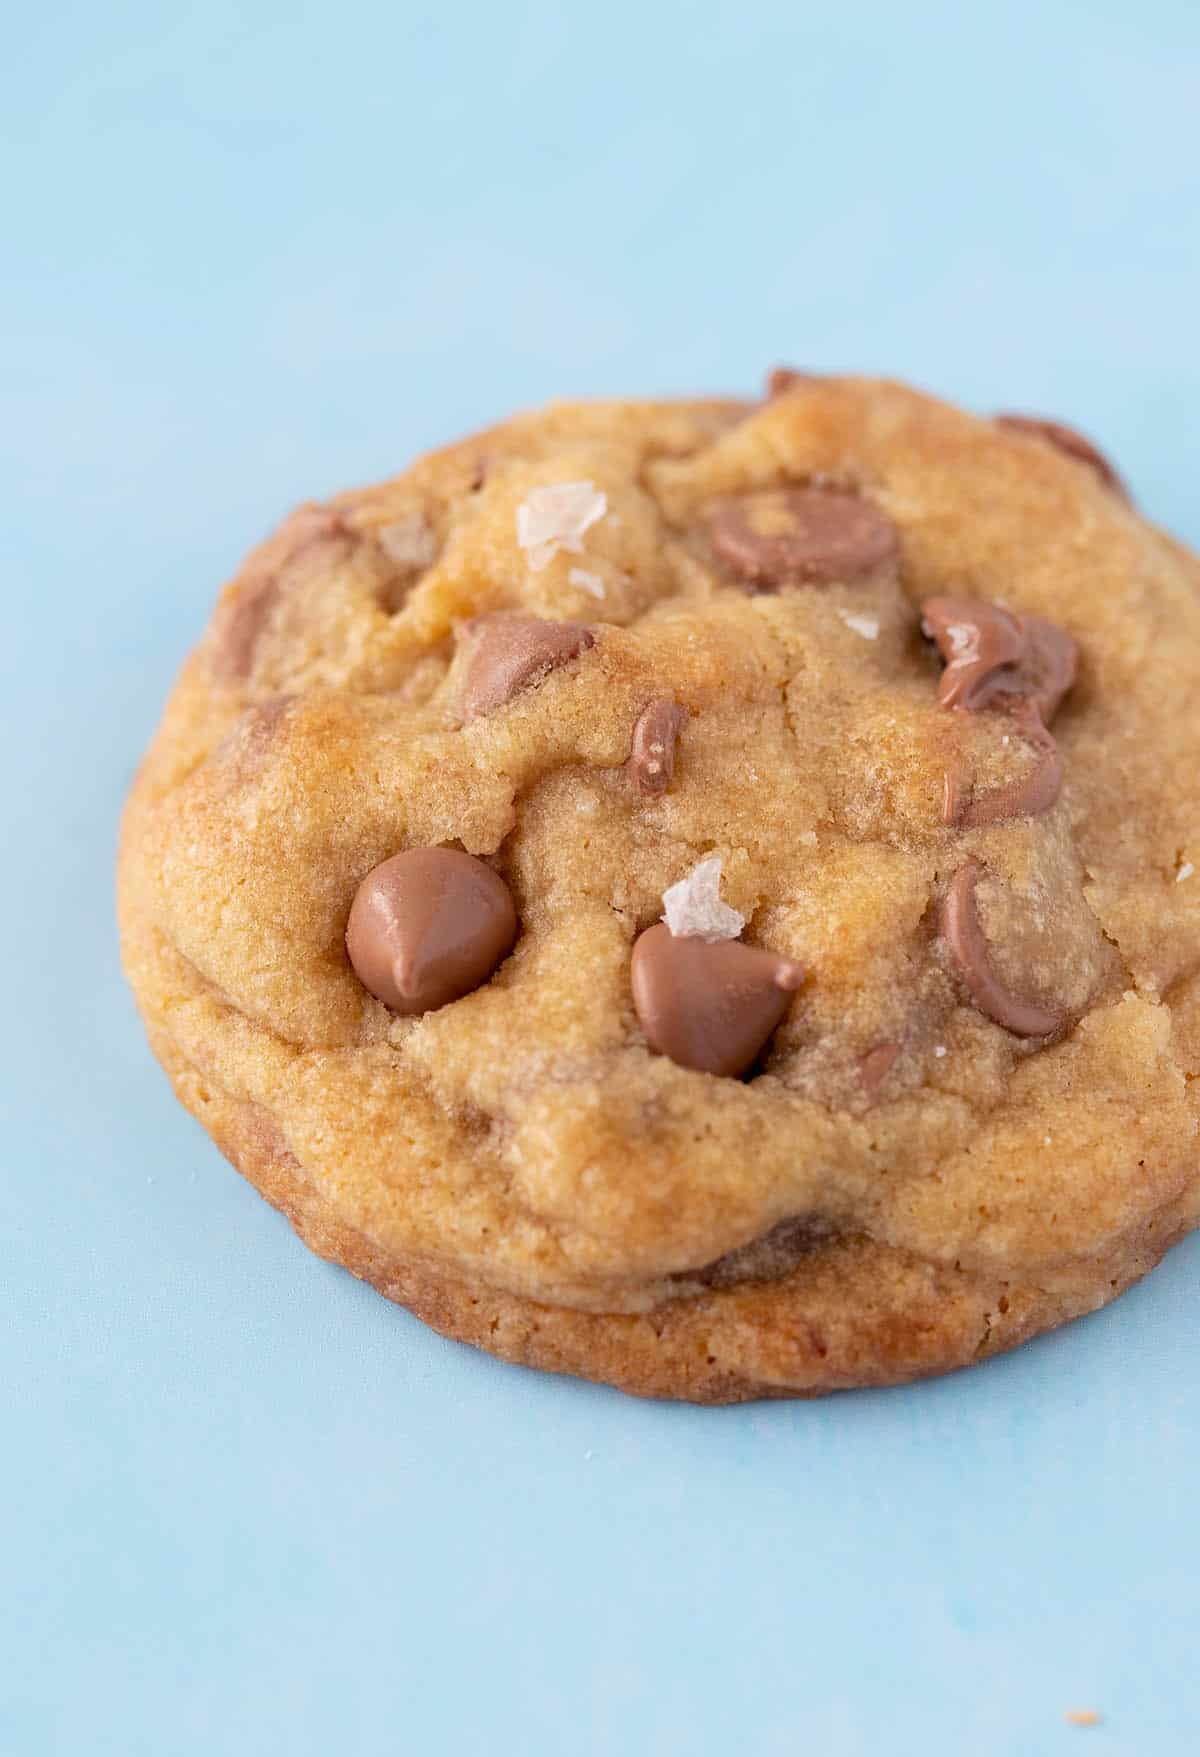 A close up of a homemade Brown Butter Chocolate Chip Cookie